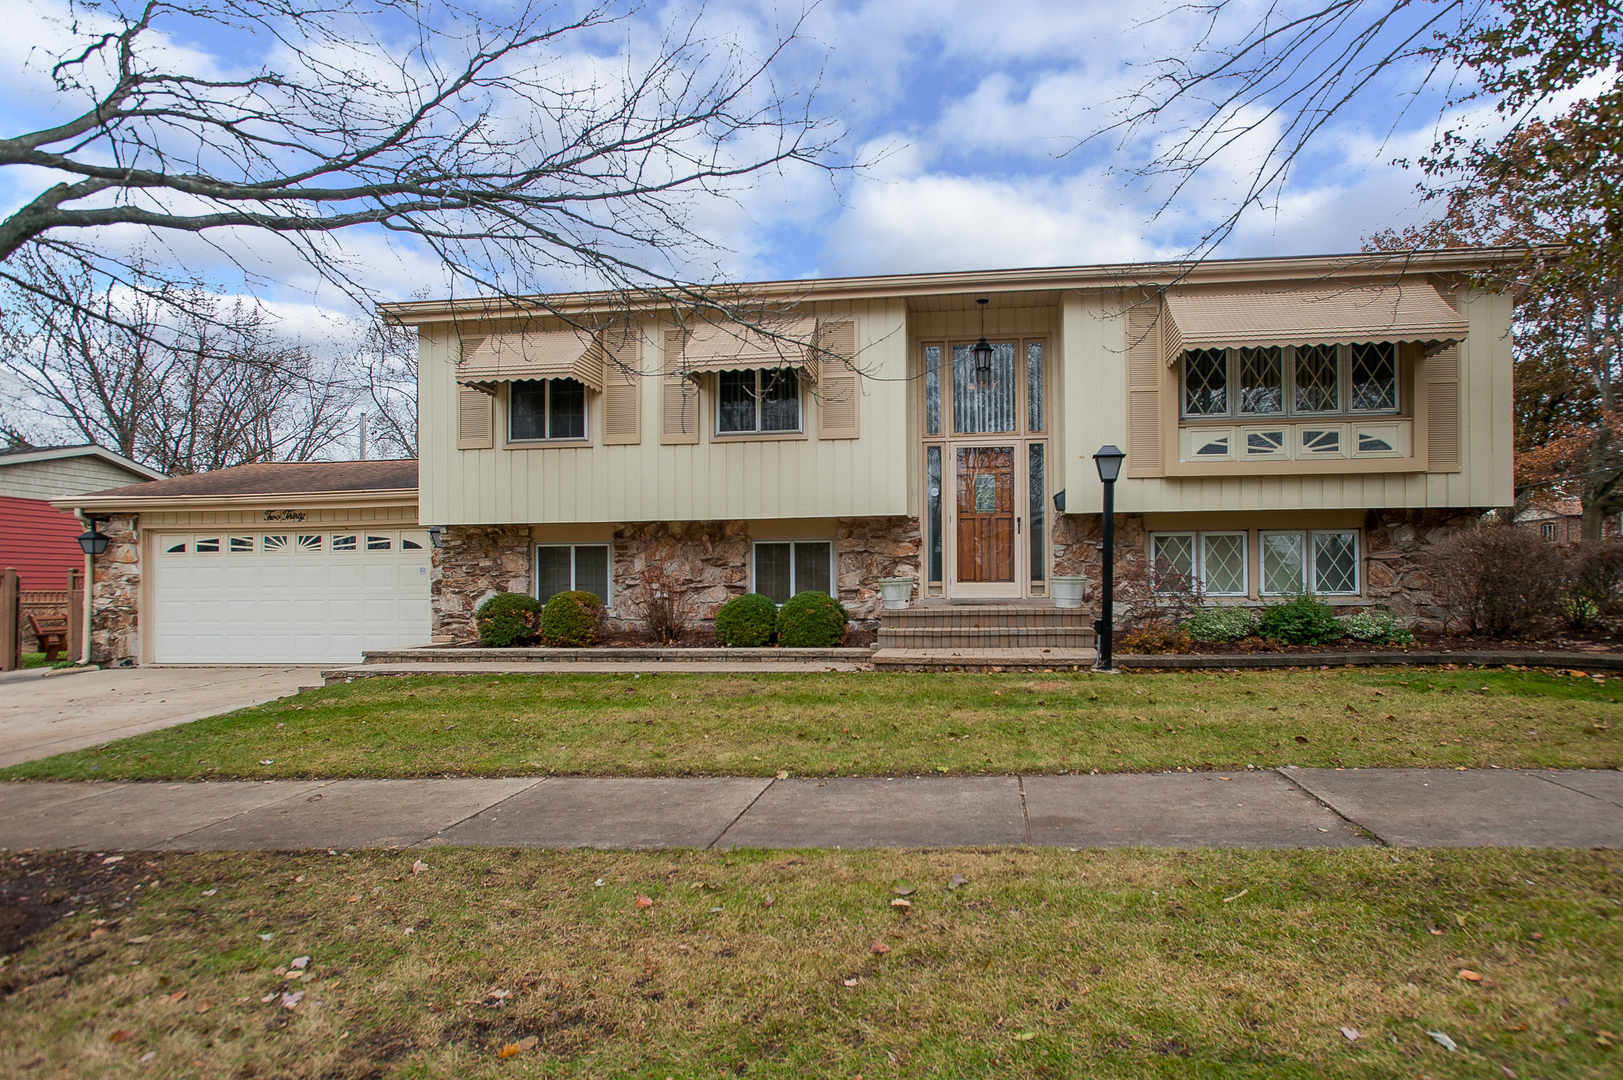 """Awesome 5 bedroom 2-1/2 bath home in sought after low tax District 48 has been cared for with extreme pride and is walking distance to highly rated grade school and high school. Main level featuring updated kitchen with tons of cabinetry and counter space, stainless appliances and beautiful back splash. Kitchen walks out to large 3 season room that overlooks professionally landscaped rear yard with two level paver patio. Spacious formal dining area and living room. 3 large bedrooms, spacious master with half bath. Lower level with two additional bedrooms, large family room and rec area. Gigantic laundry area with second kitchen. Attached 2 car garage. All baths recently updated. Please note, fireplace is """"as-is."""""""